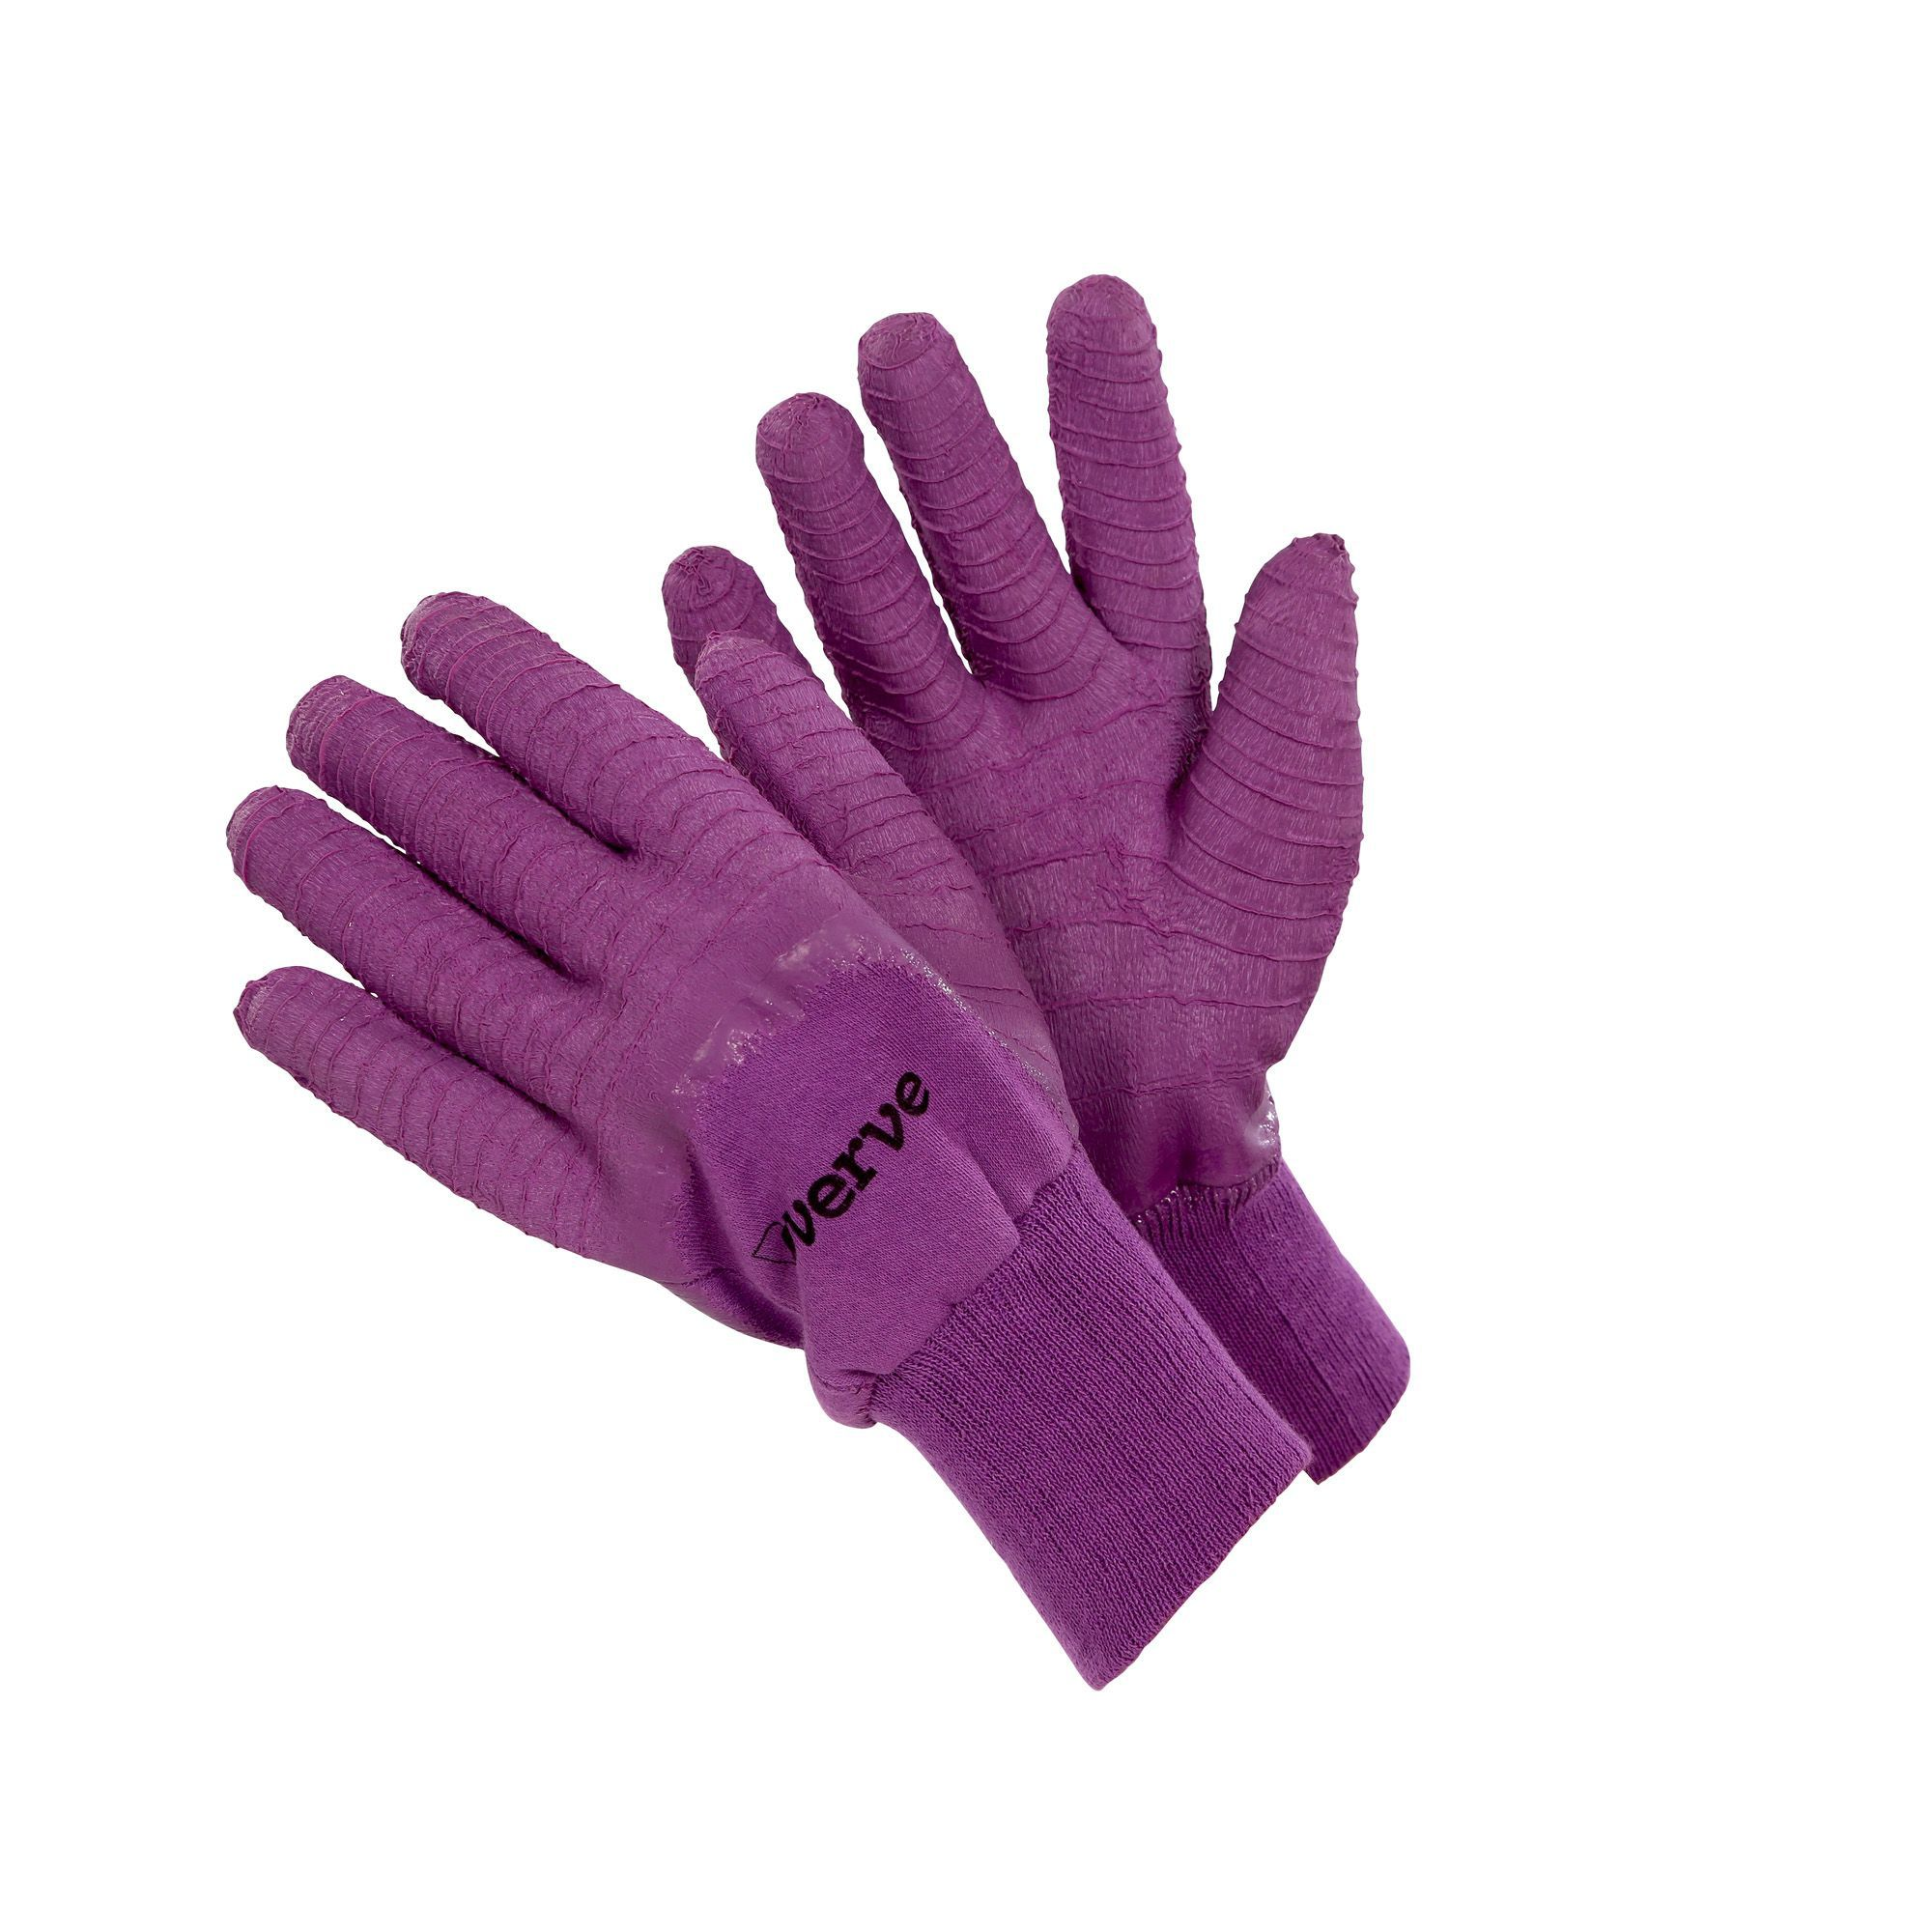 Verve latex polycotton blend ladies all purpose for Gardening gloves ladies